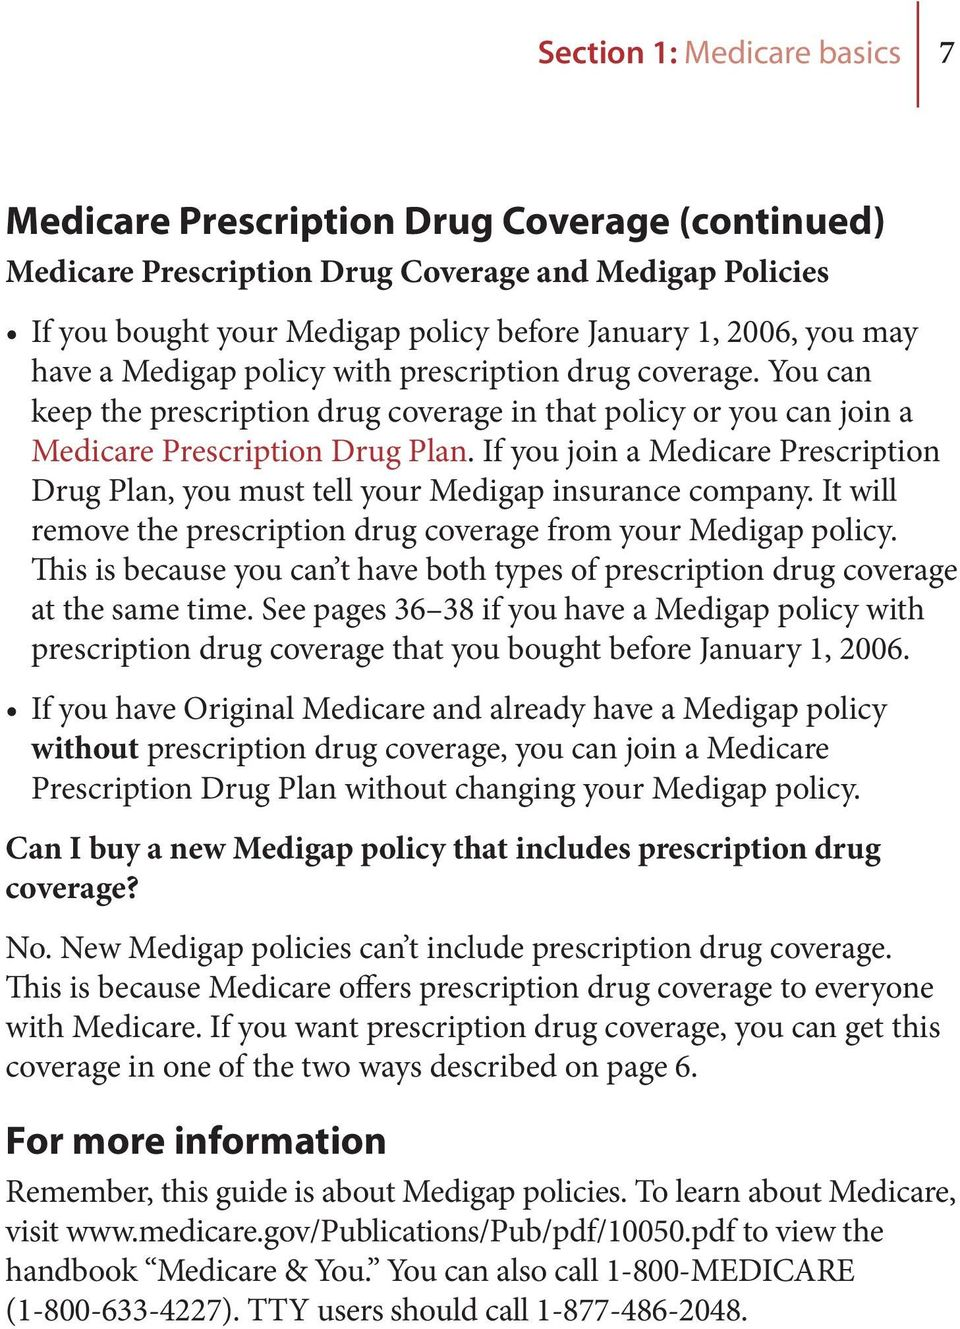 If you join a Medicare Prescription Drug Plan, you must tell your Medigap insurance company. It will remove the prescription drug coverage from your Medigap policy.